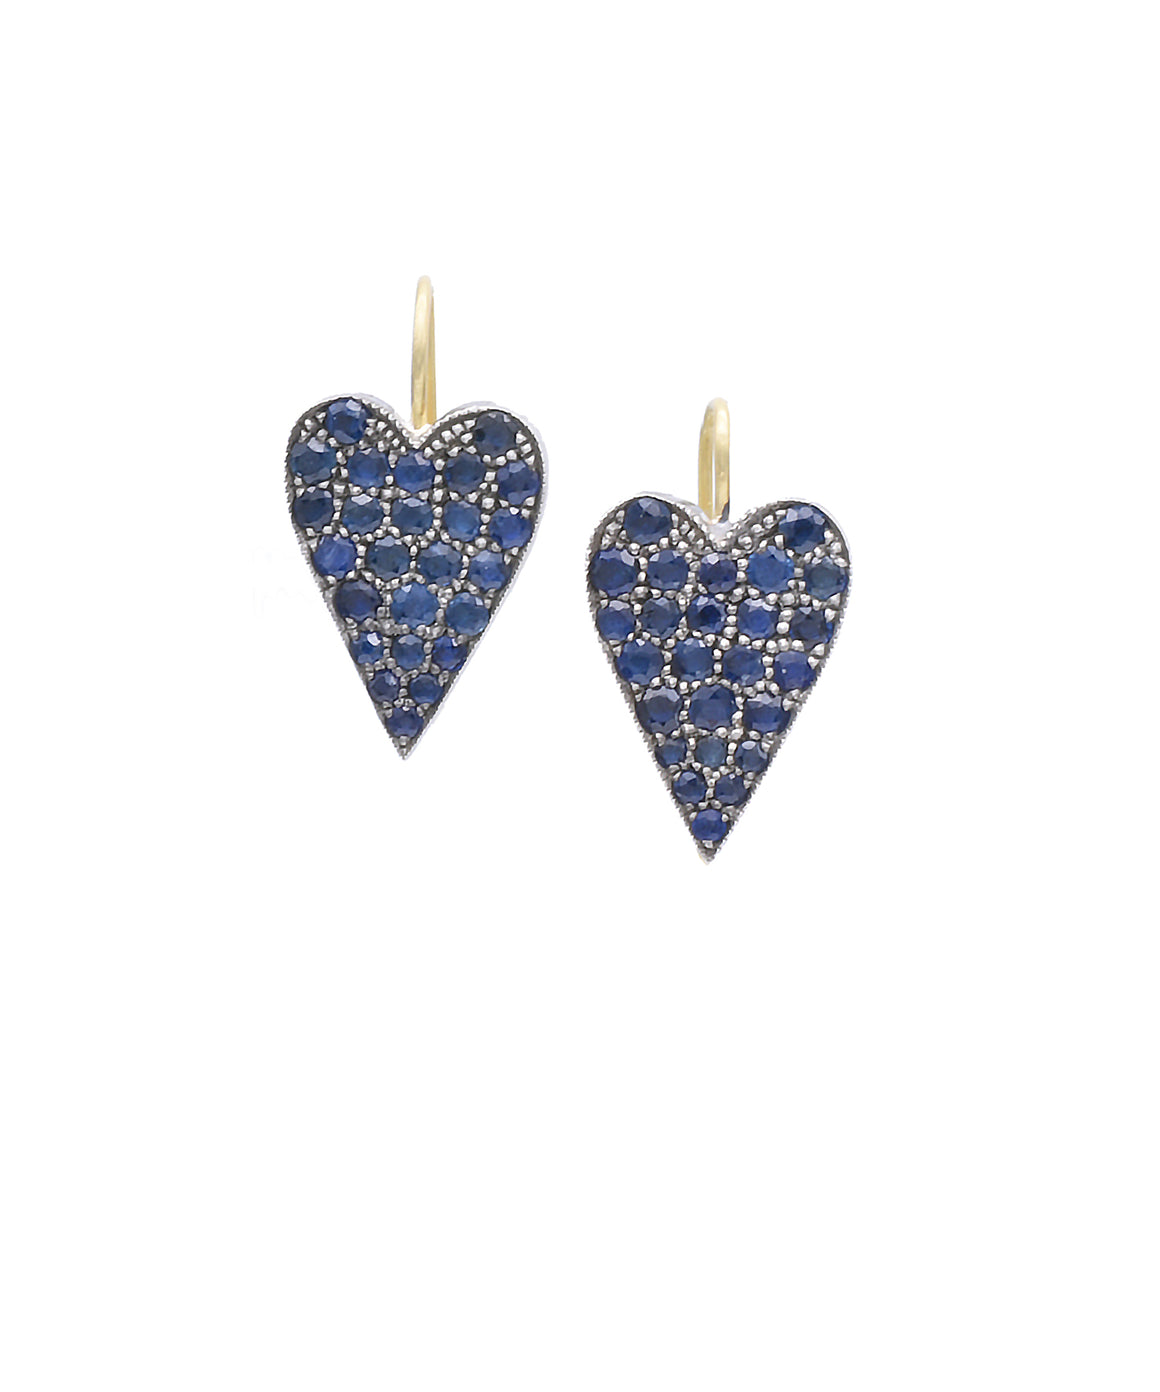 Sapphire Heart Earrings